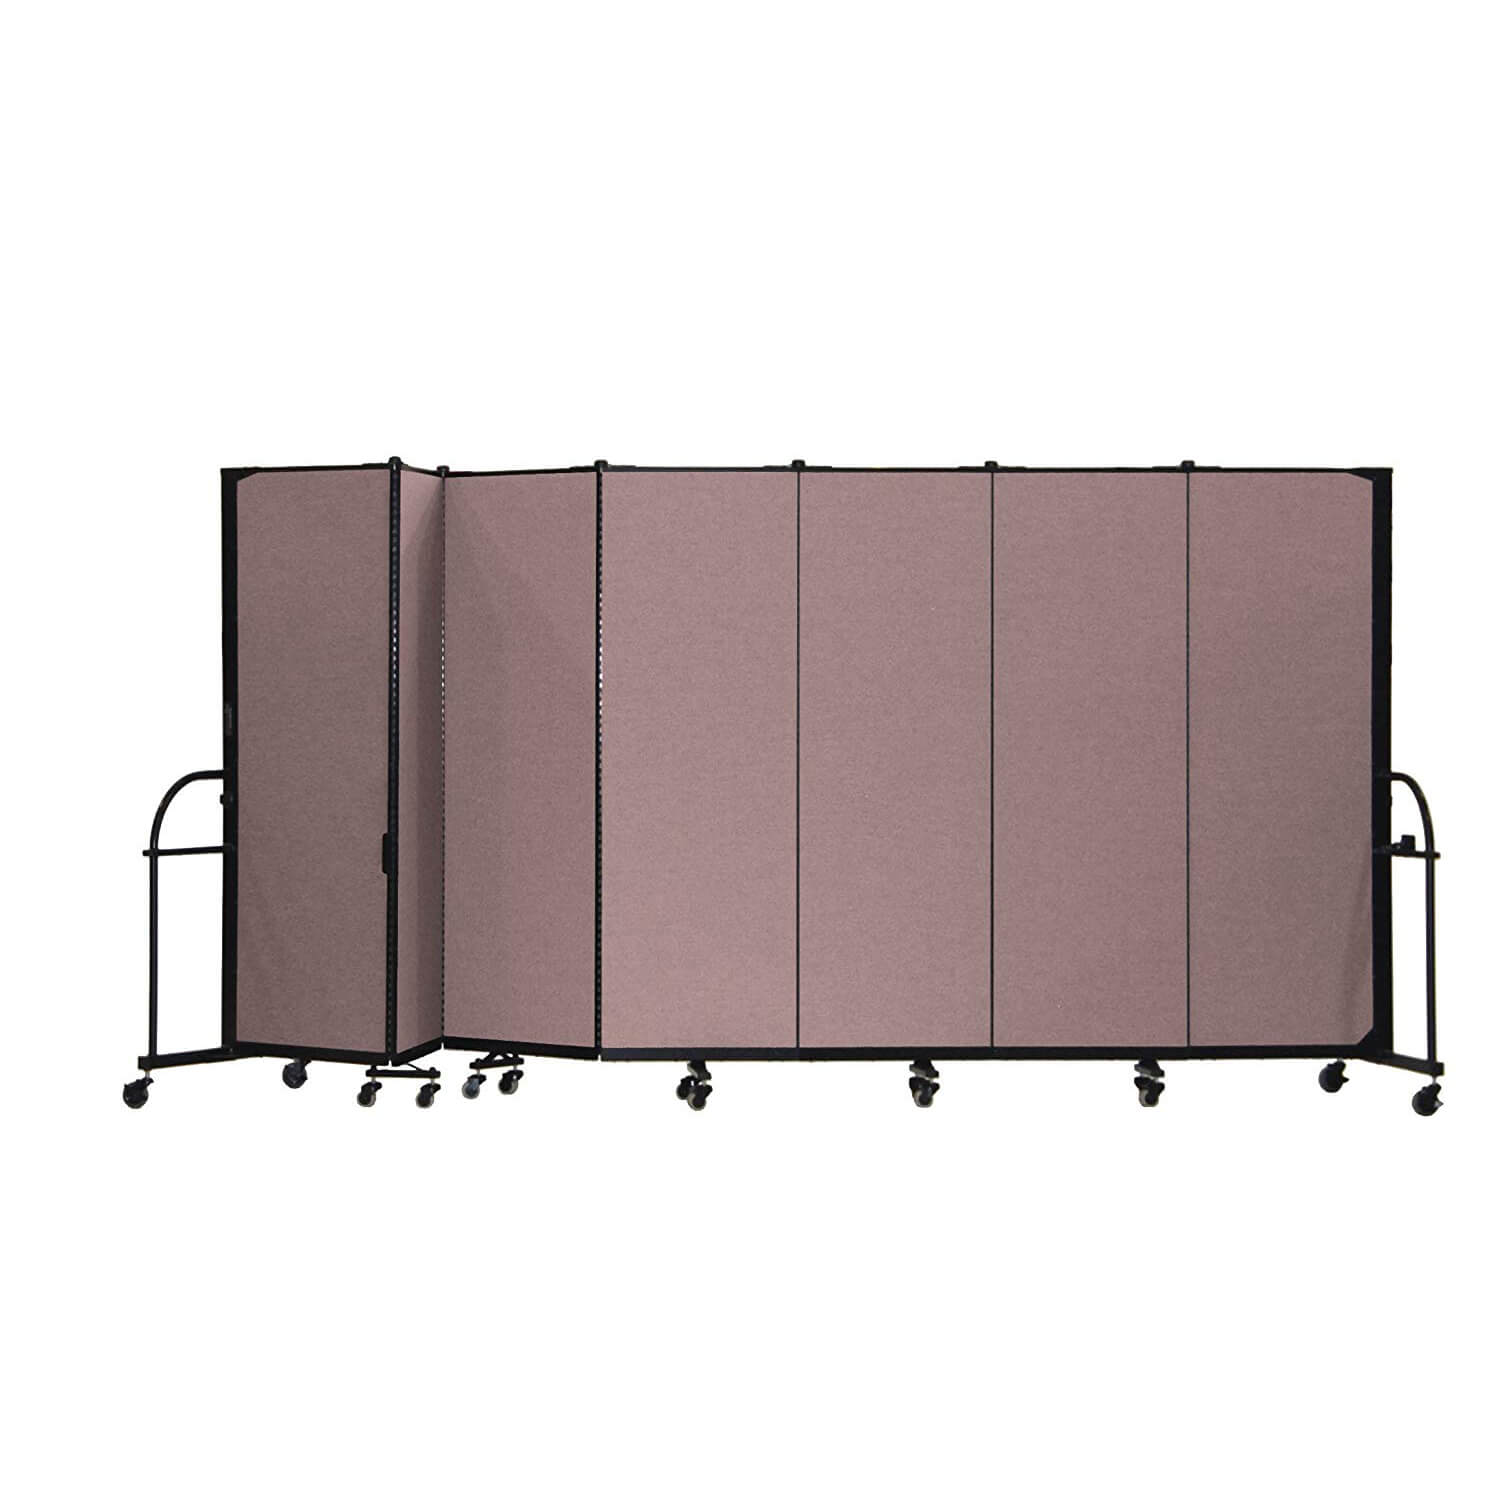 portable-room-dividers-room-dividers-for-office.jpg